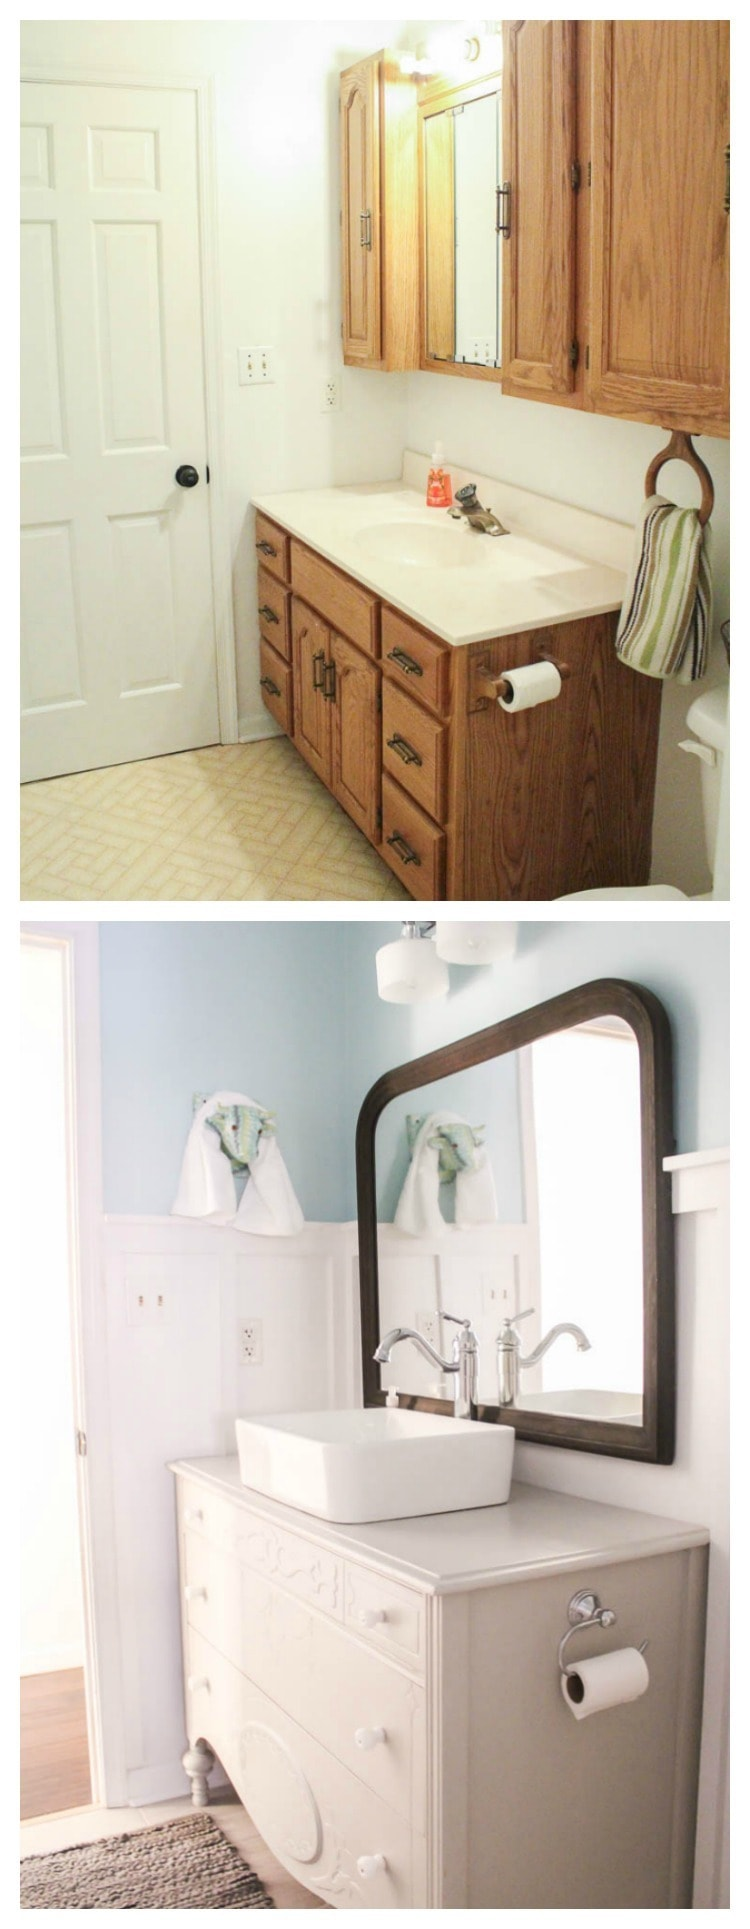 DIY bathroom vanity before and after